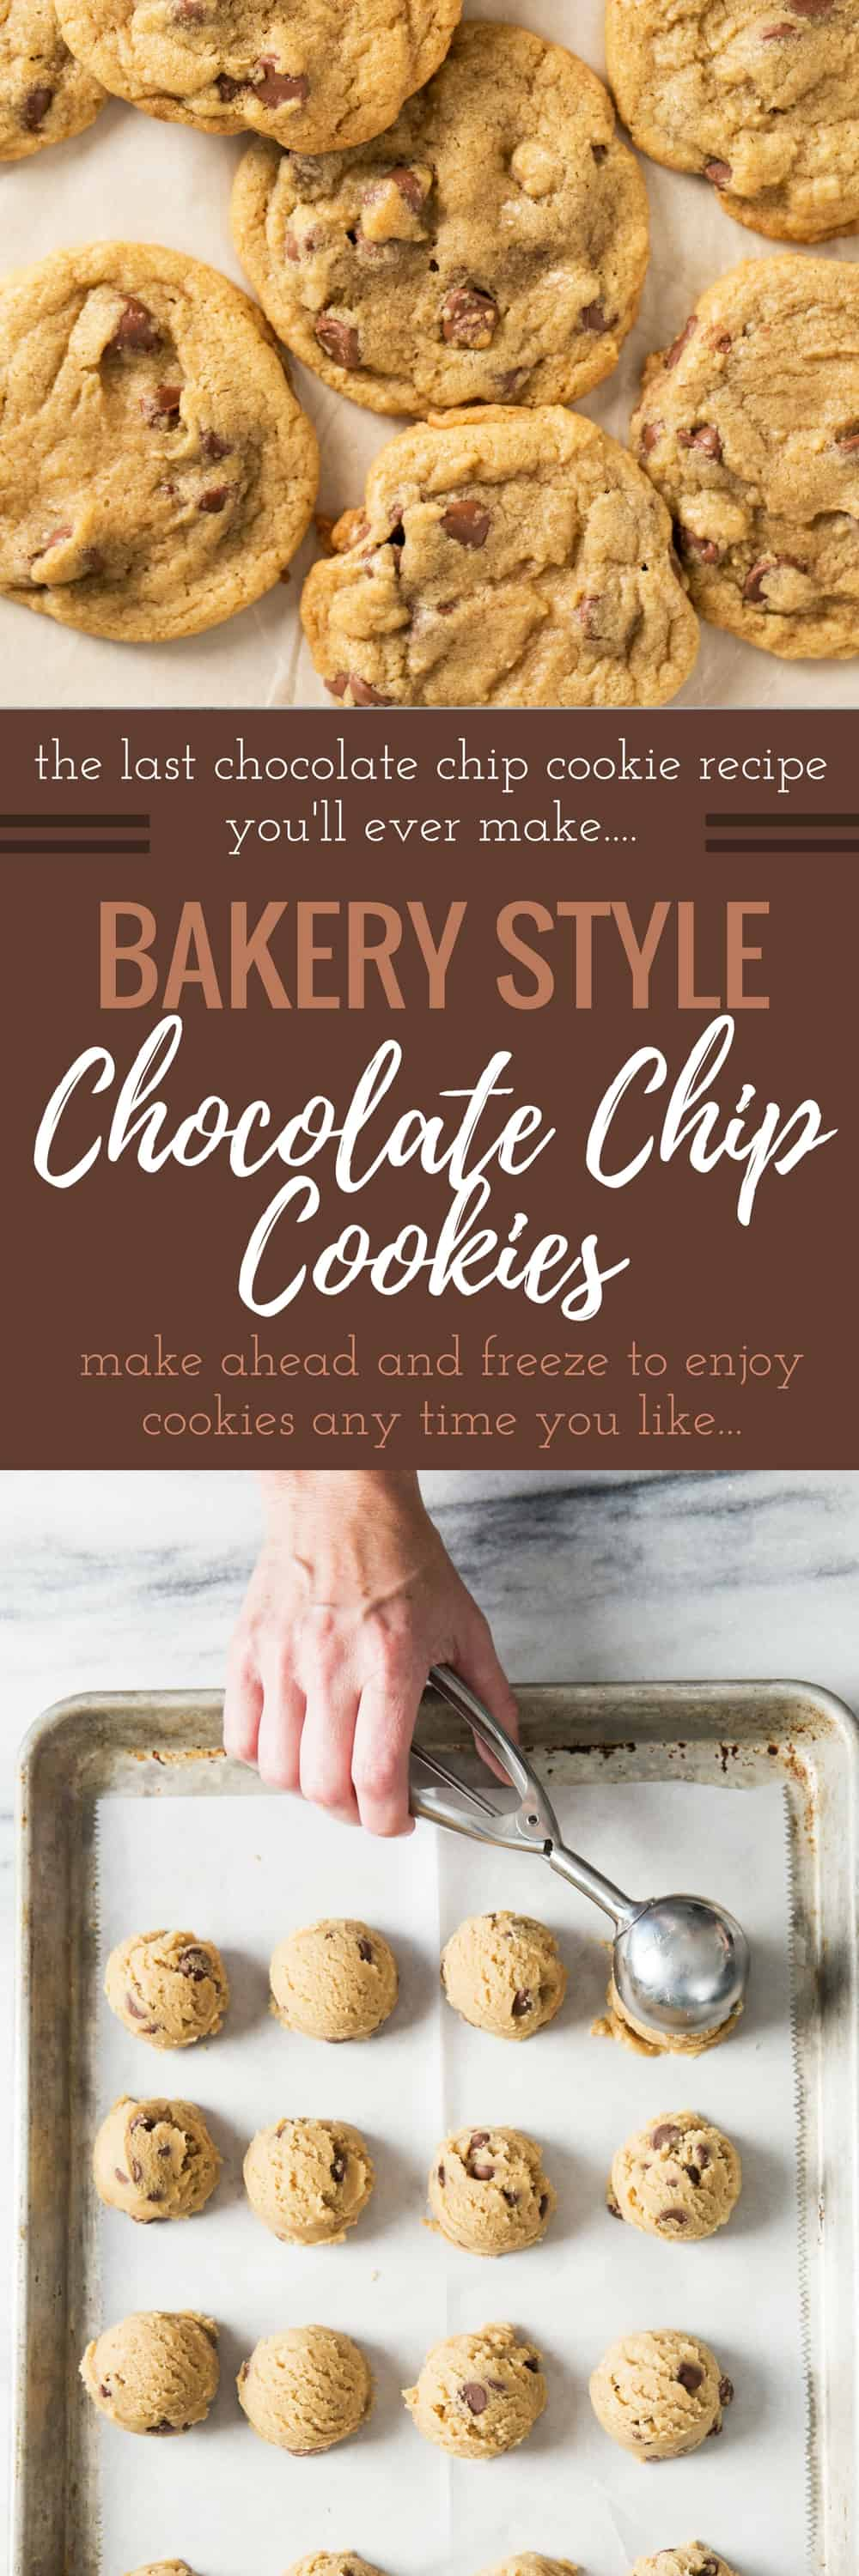 The BEST BAKERY STYLE Chocolate Chip Cookie Recipe that turns out perfect EVERY TIME! Once you try this recipe you will never want to make another recipe again, ever. It's perfection. The Master chocolate chip cookie recipe.